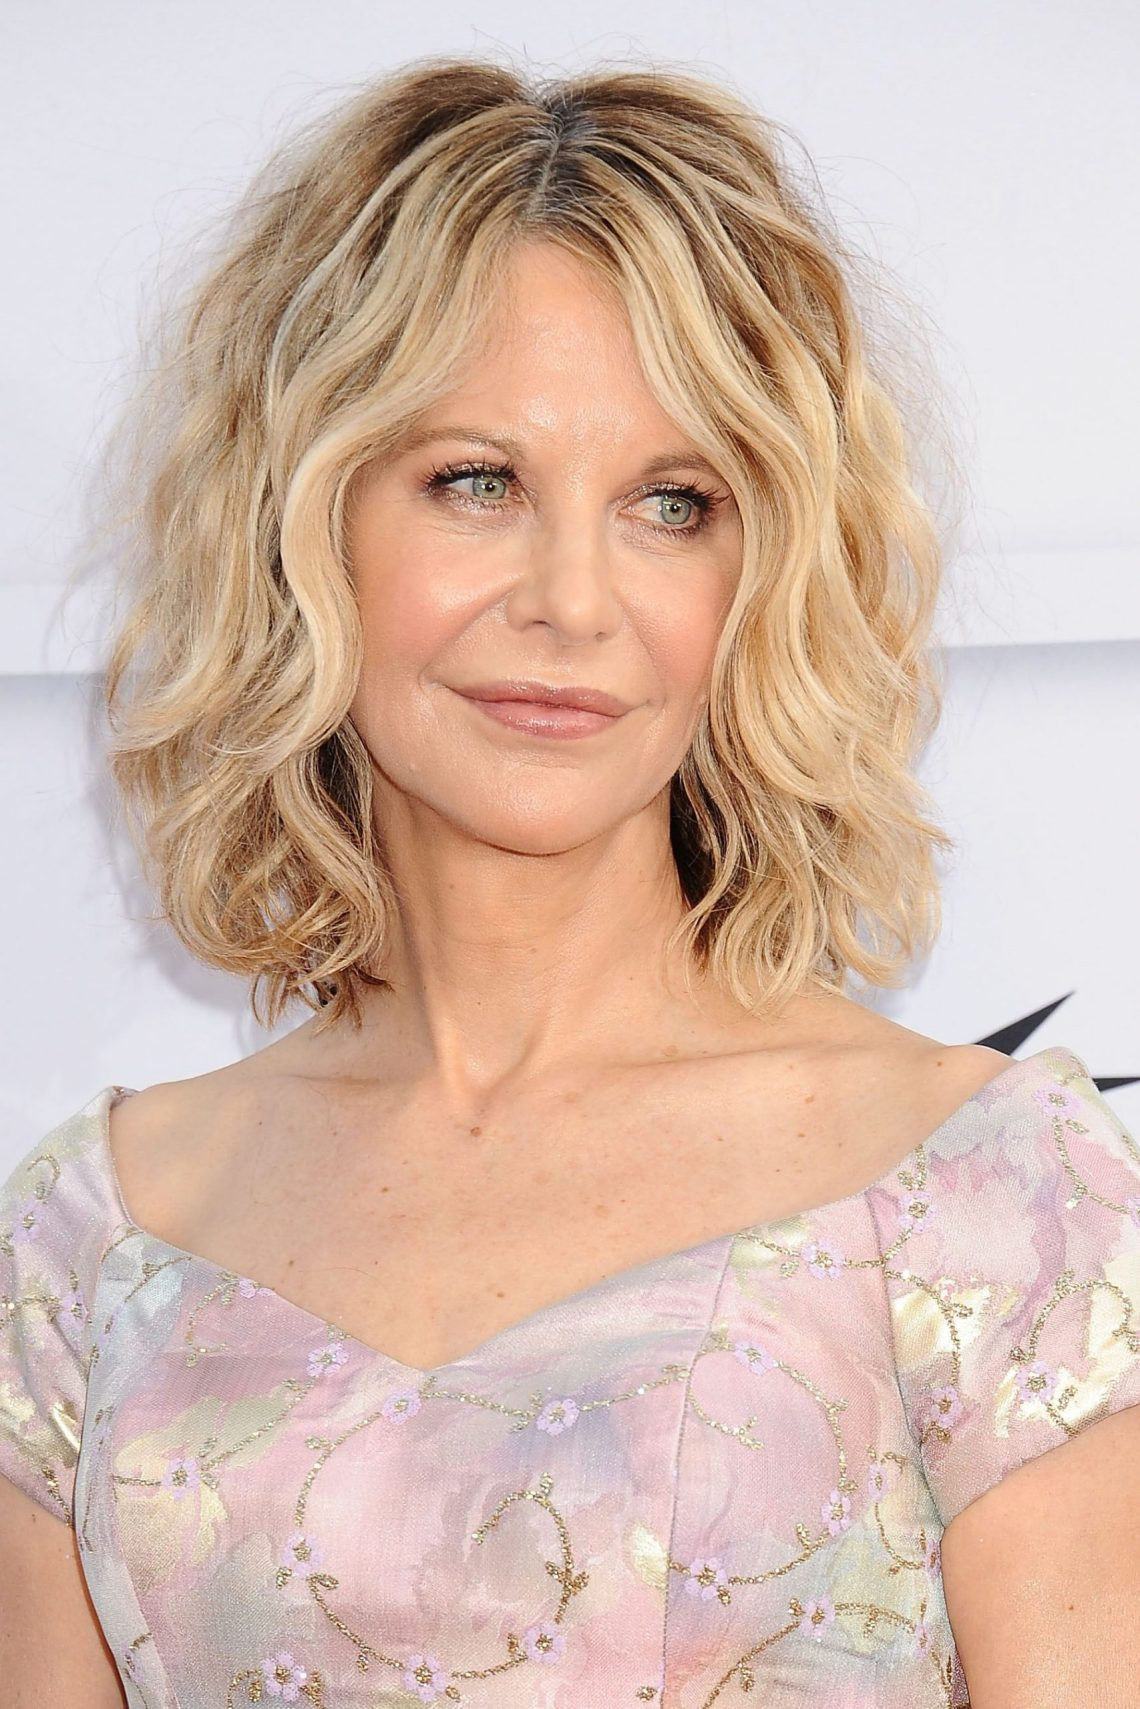 50 Best Hairstyles For Women Over 50 Celebrity Haircuts 30+ Awesome Medium Length Hairstyles For Over 50S